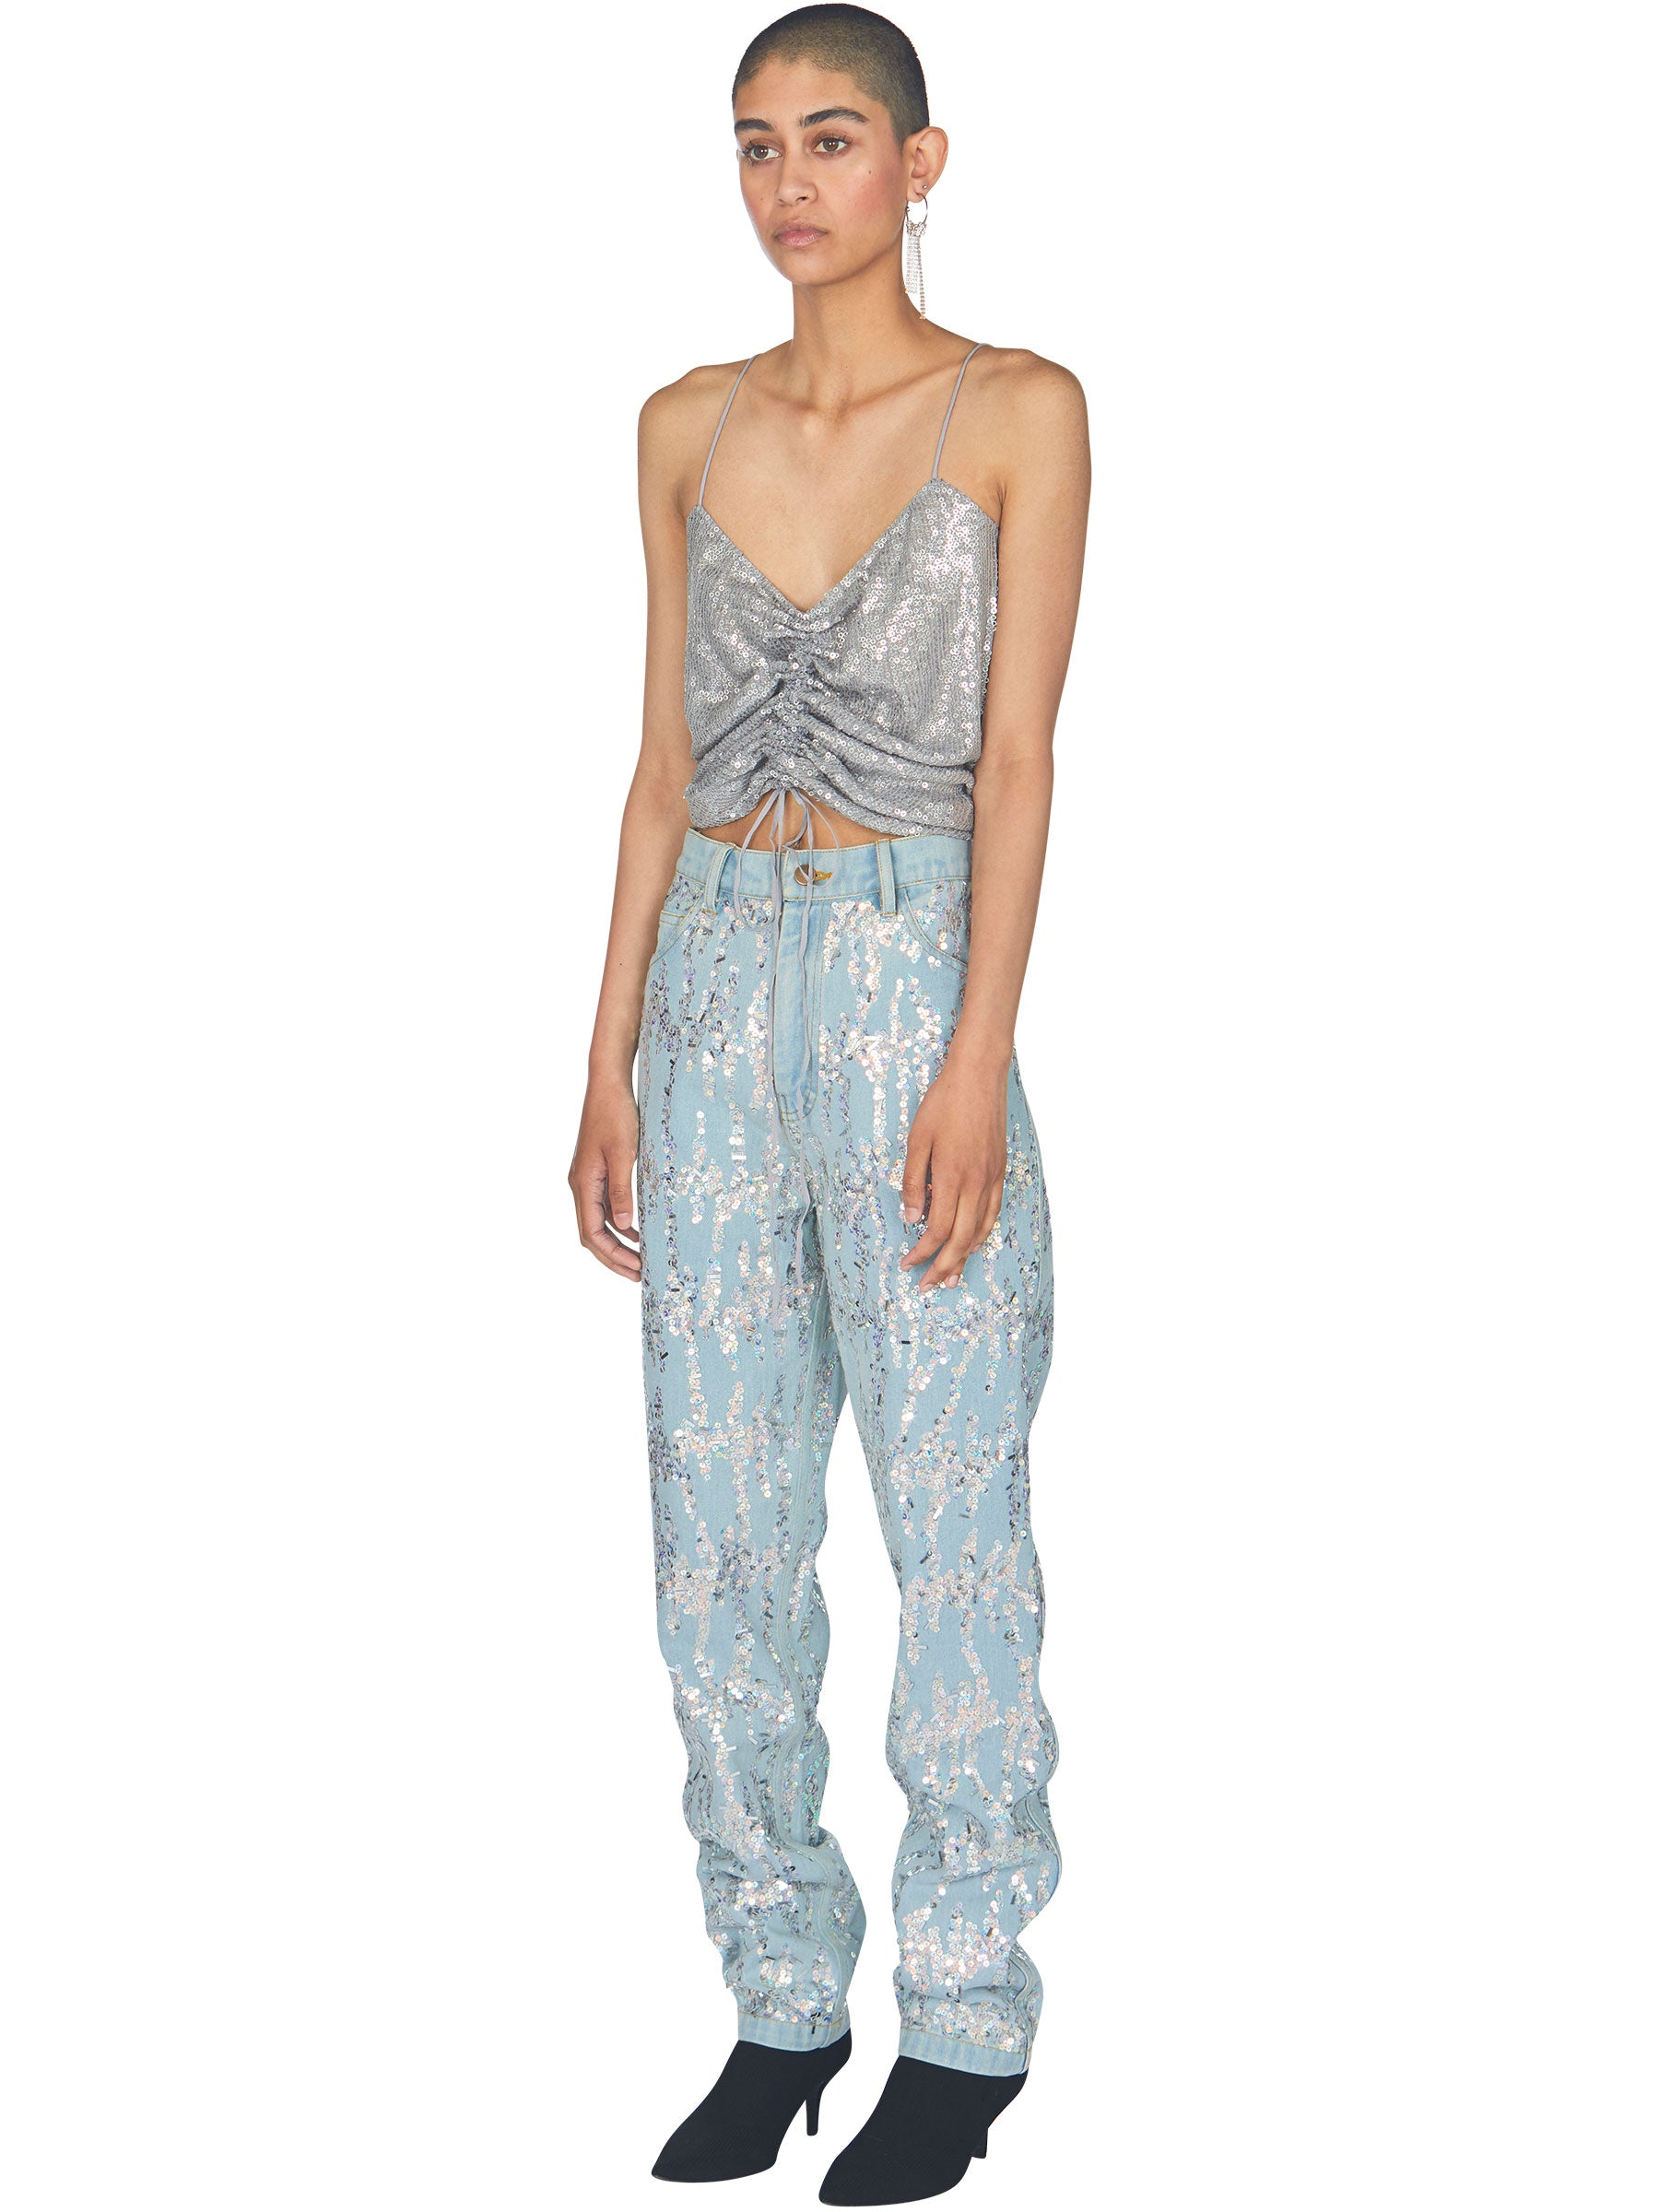 odd92 Ashish Unisex Embroidered Denim Jeans Sequins Spring/Summer 2019 - 3